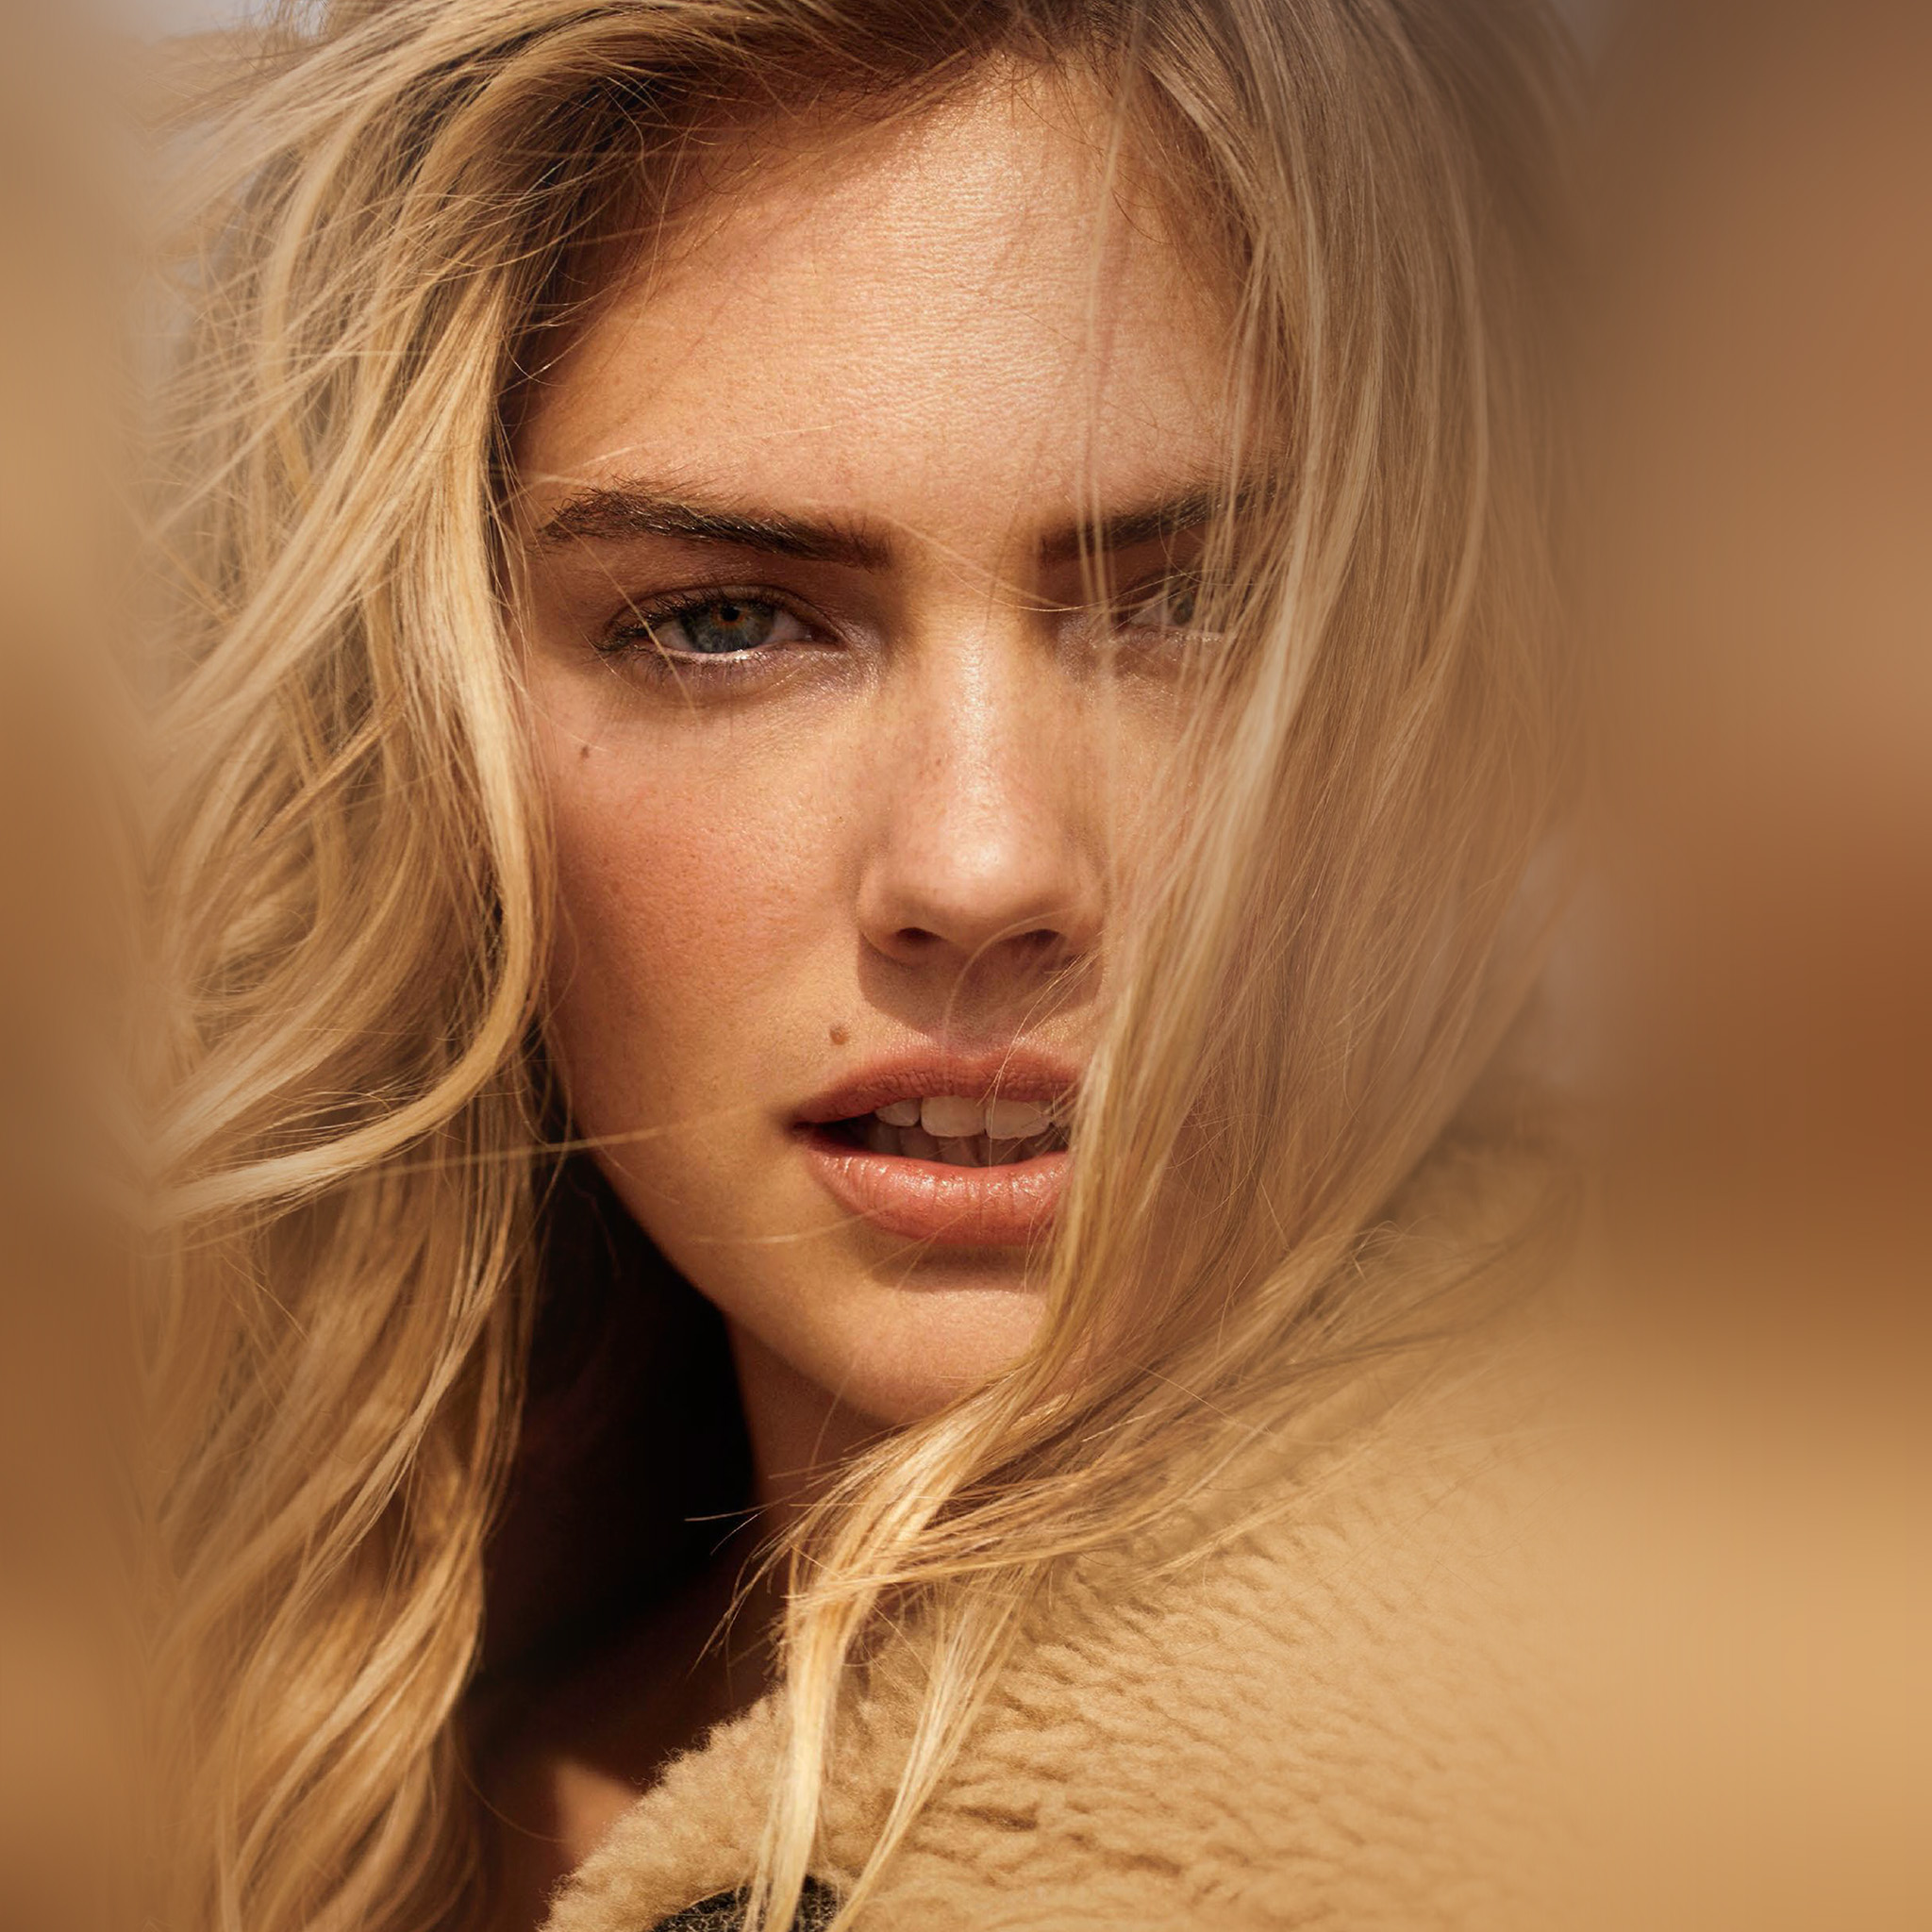 Hq40-kate-upton-girl-face-sexy-wallpaper